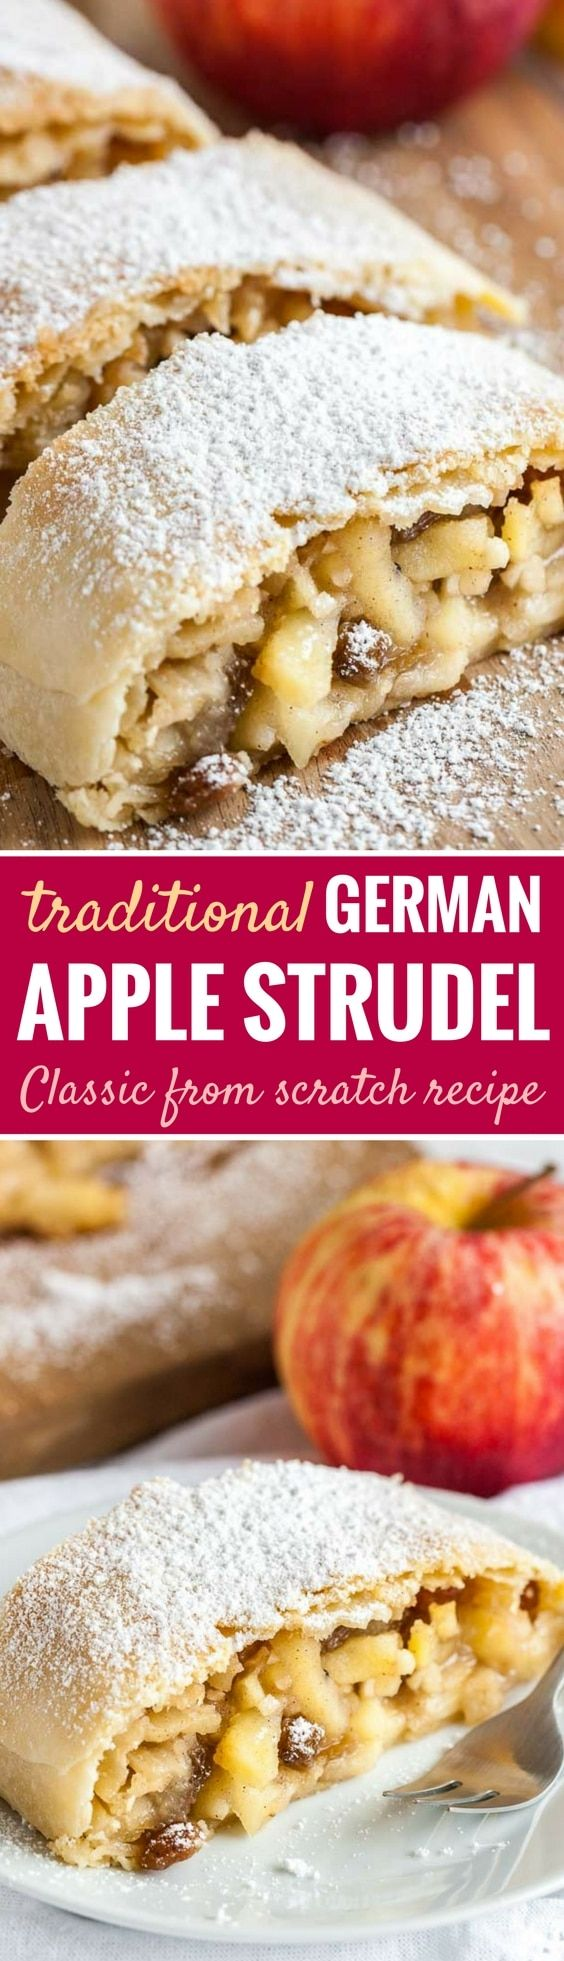 Apple Strudel is much easier to make from scratch than you think! With its flaky crust and a spiced apple filling, this traditional Apfelstrudel recipe is sure to wow your guests. Serve it with vanilla ice cream or vanilla sauce and you have the most delicious fall and winter dessert that everyone will love! #applestrudel #appledesserts #germanrecipes #winterdesserts